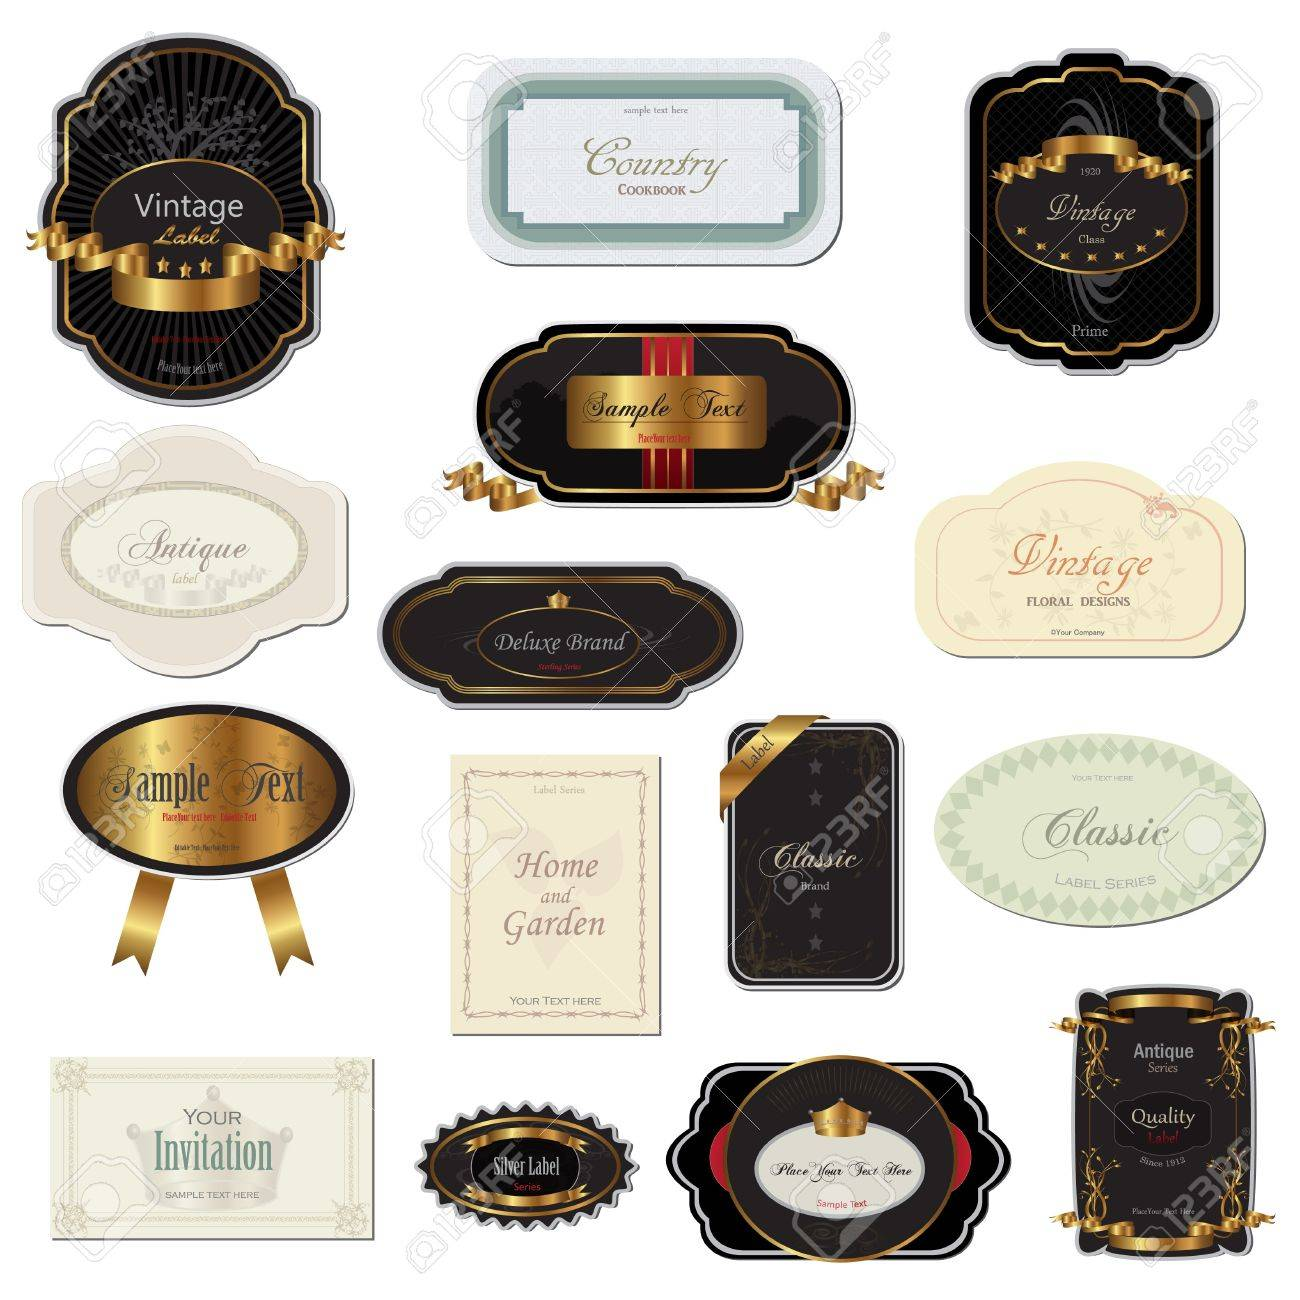 Image of various vintage labels isolated on a white background. - 9555654